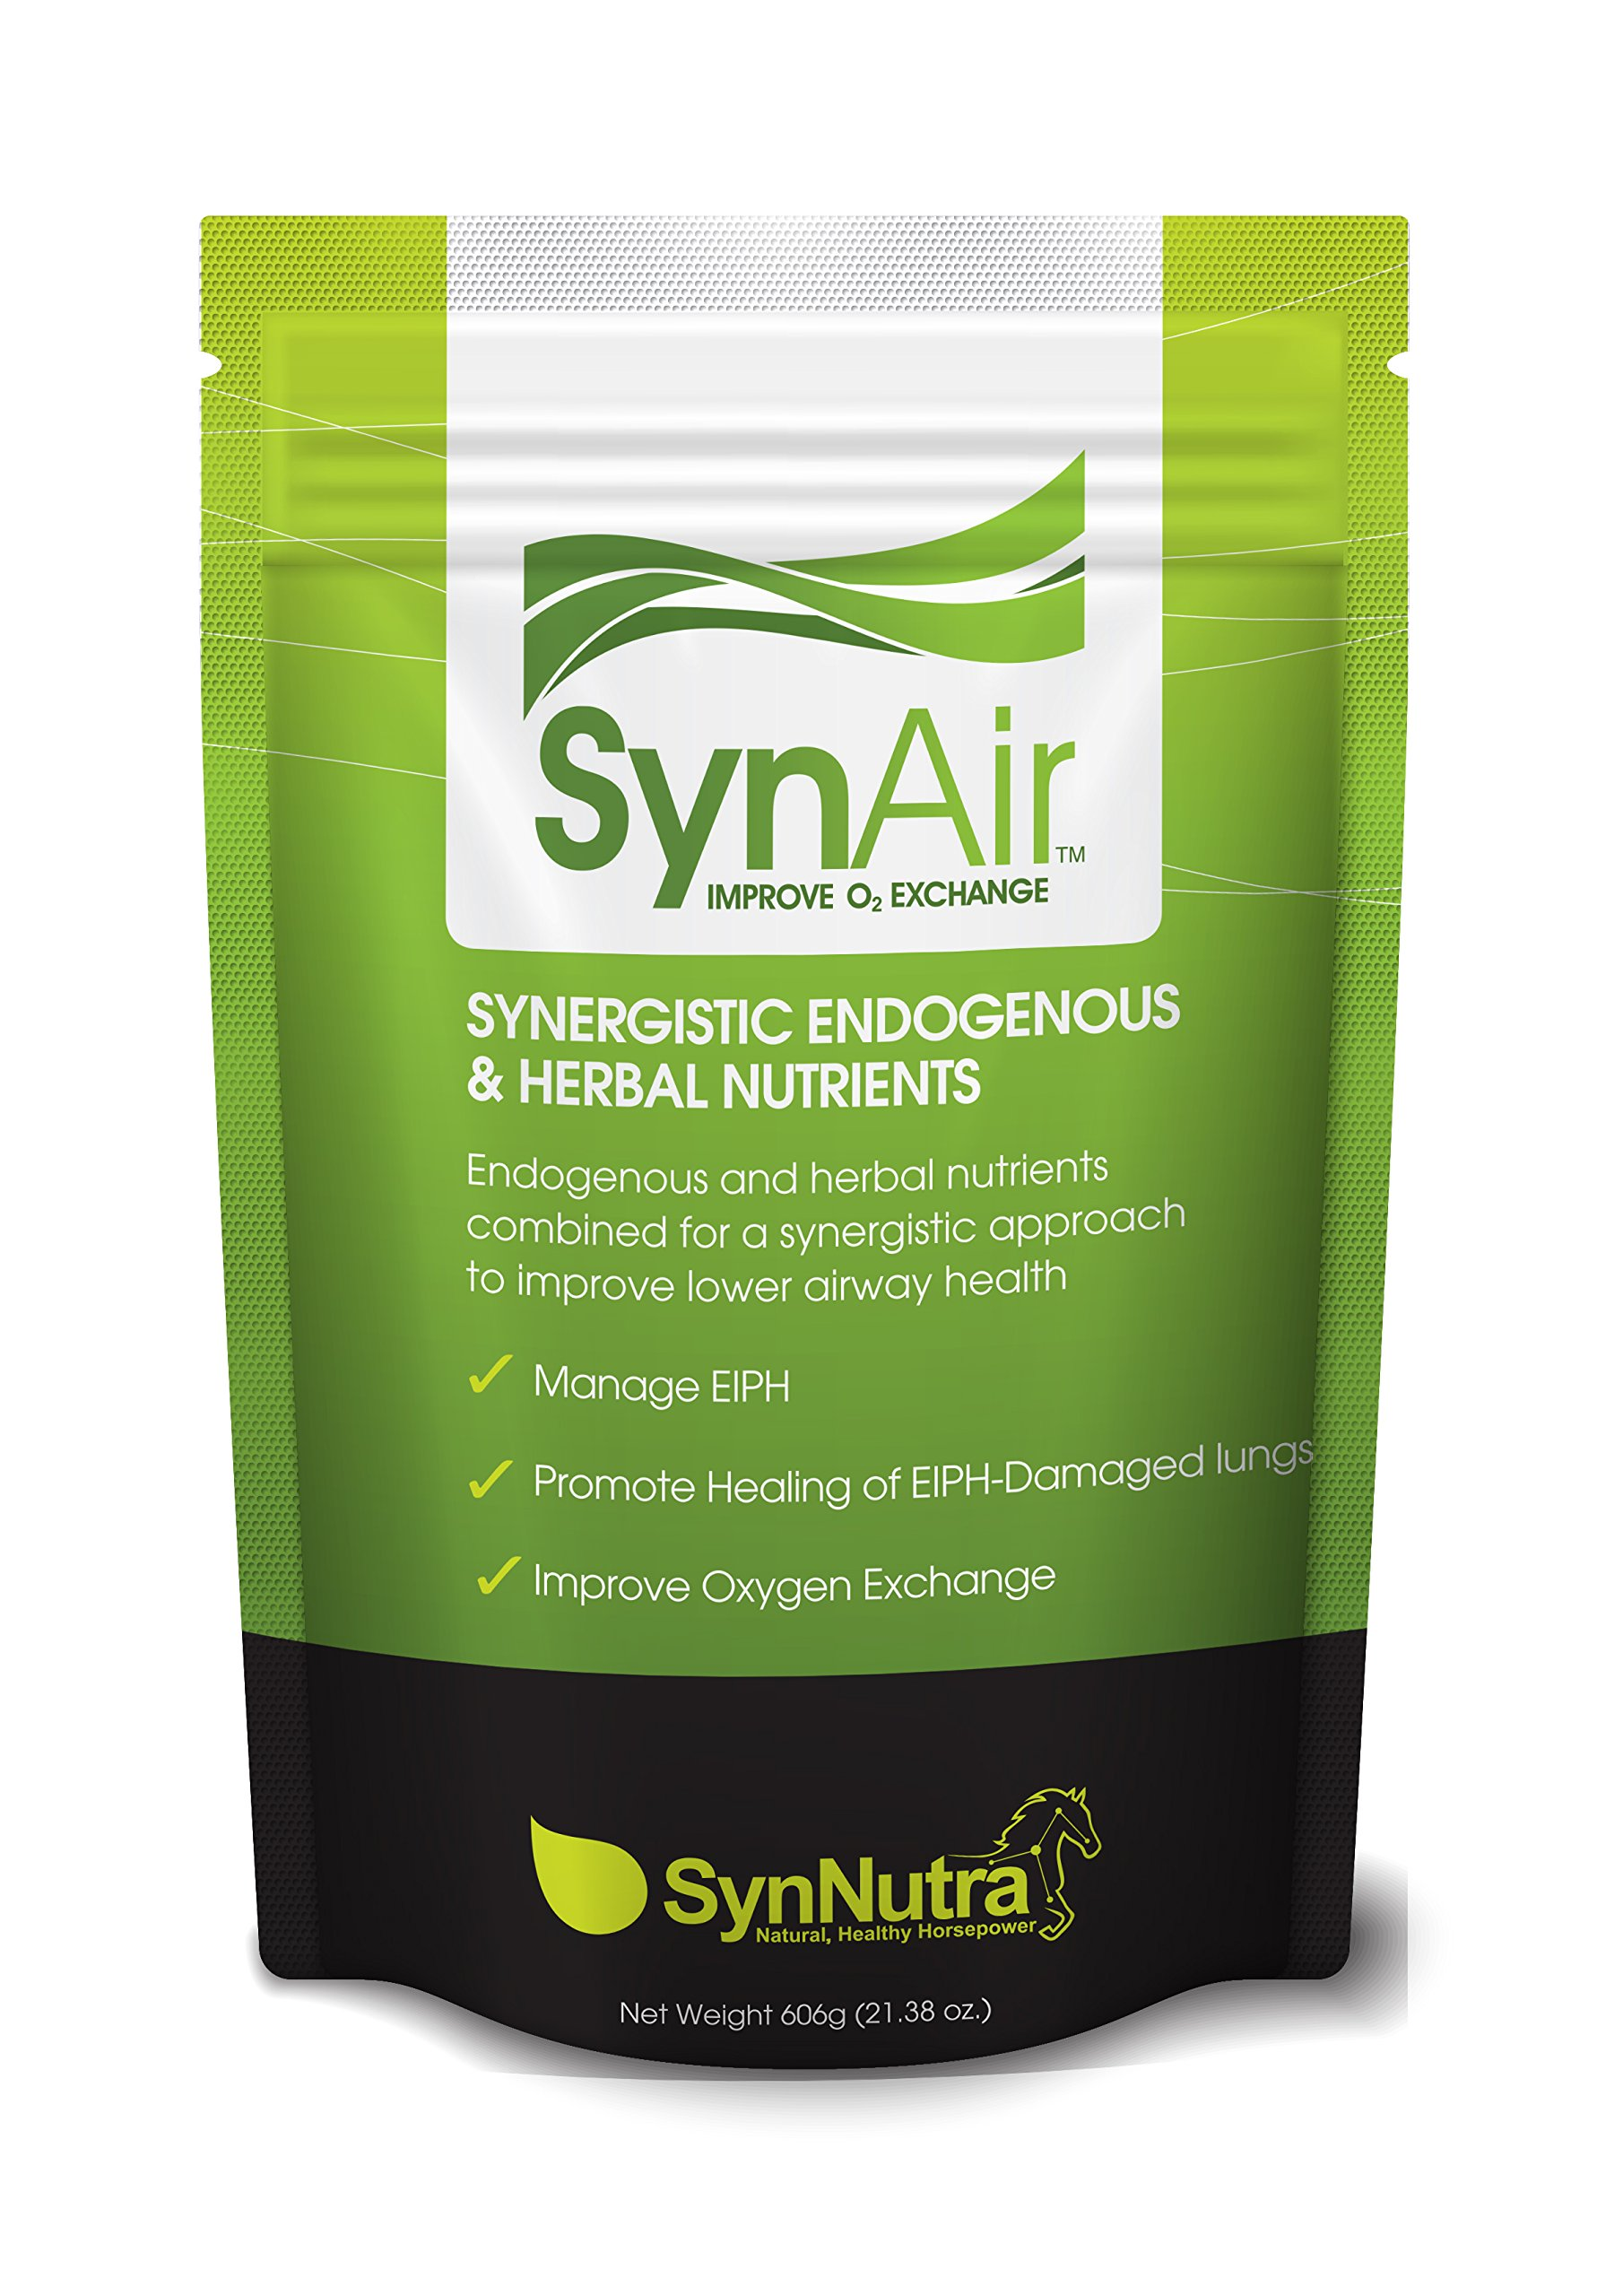 SynNutra Equine SynAir-EIPH (Bleeder) Prevention